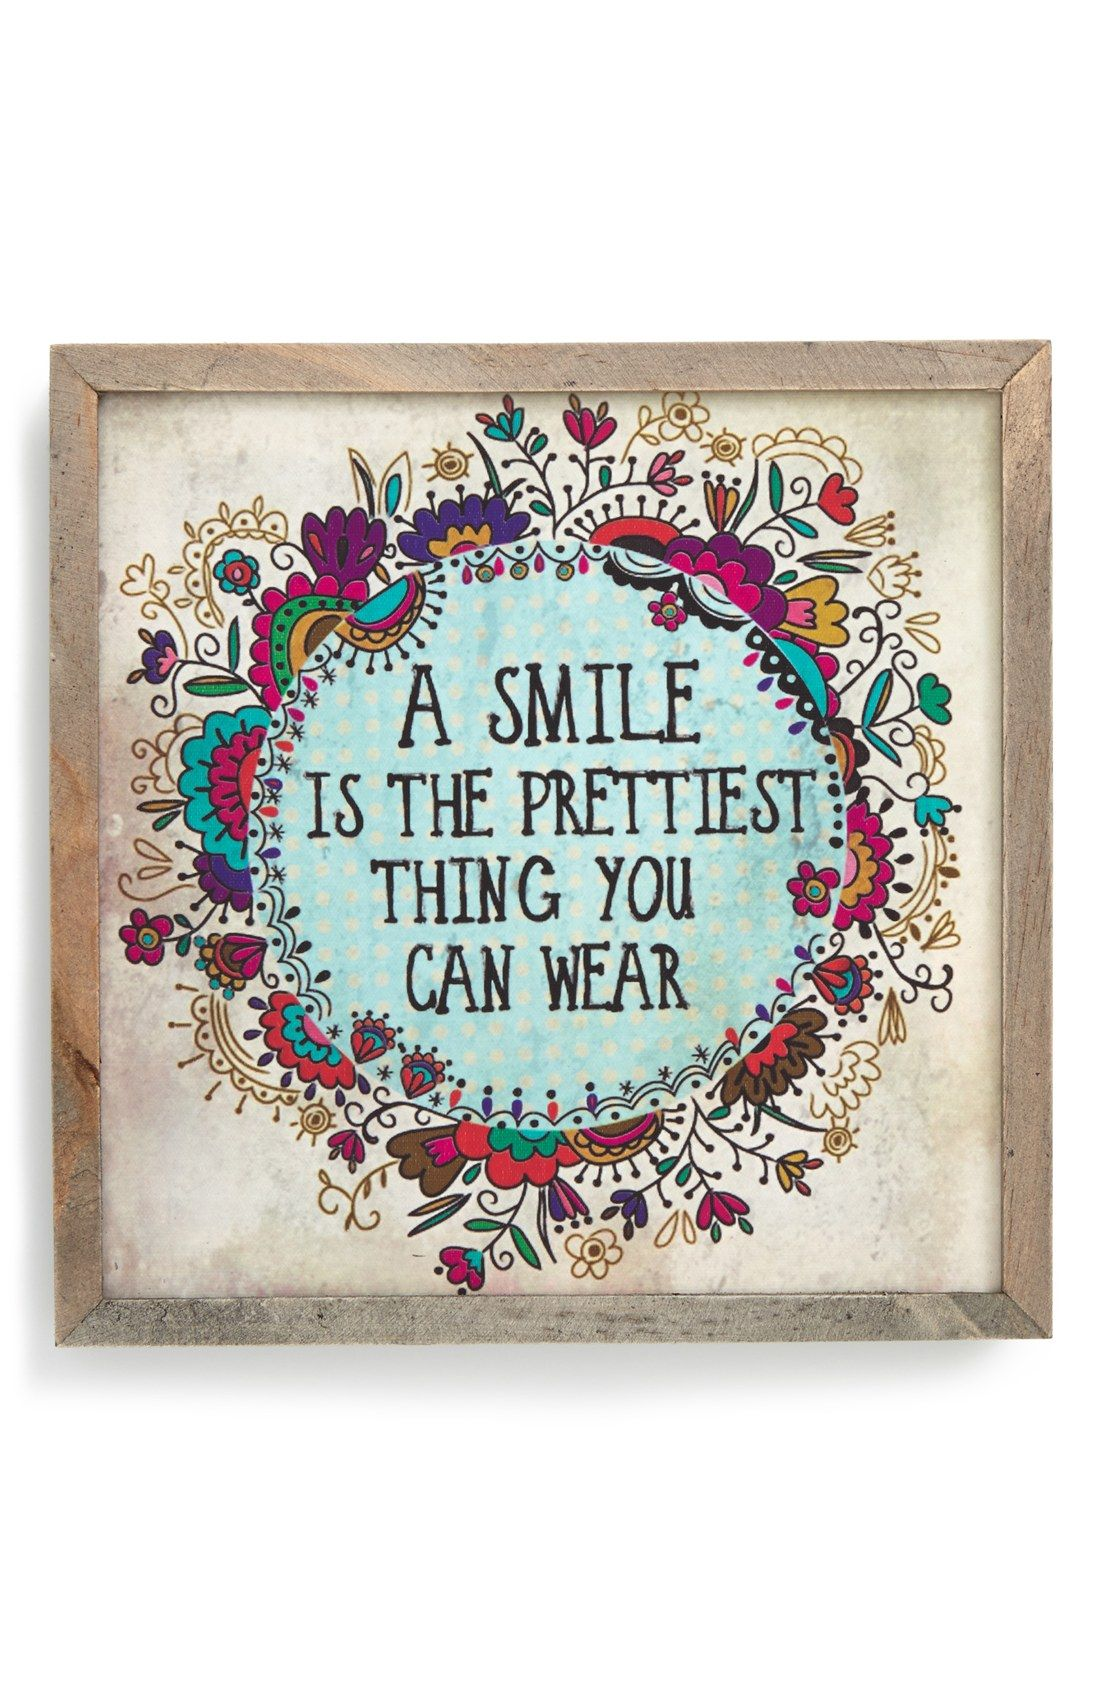 a smile is the prettiest thing you can wear well said